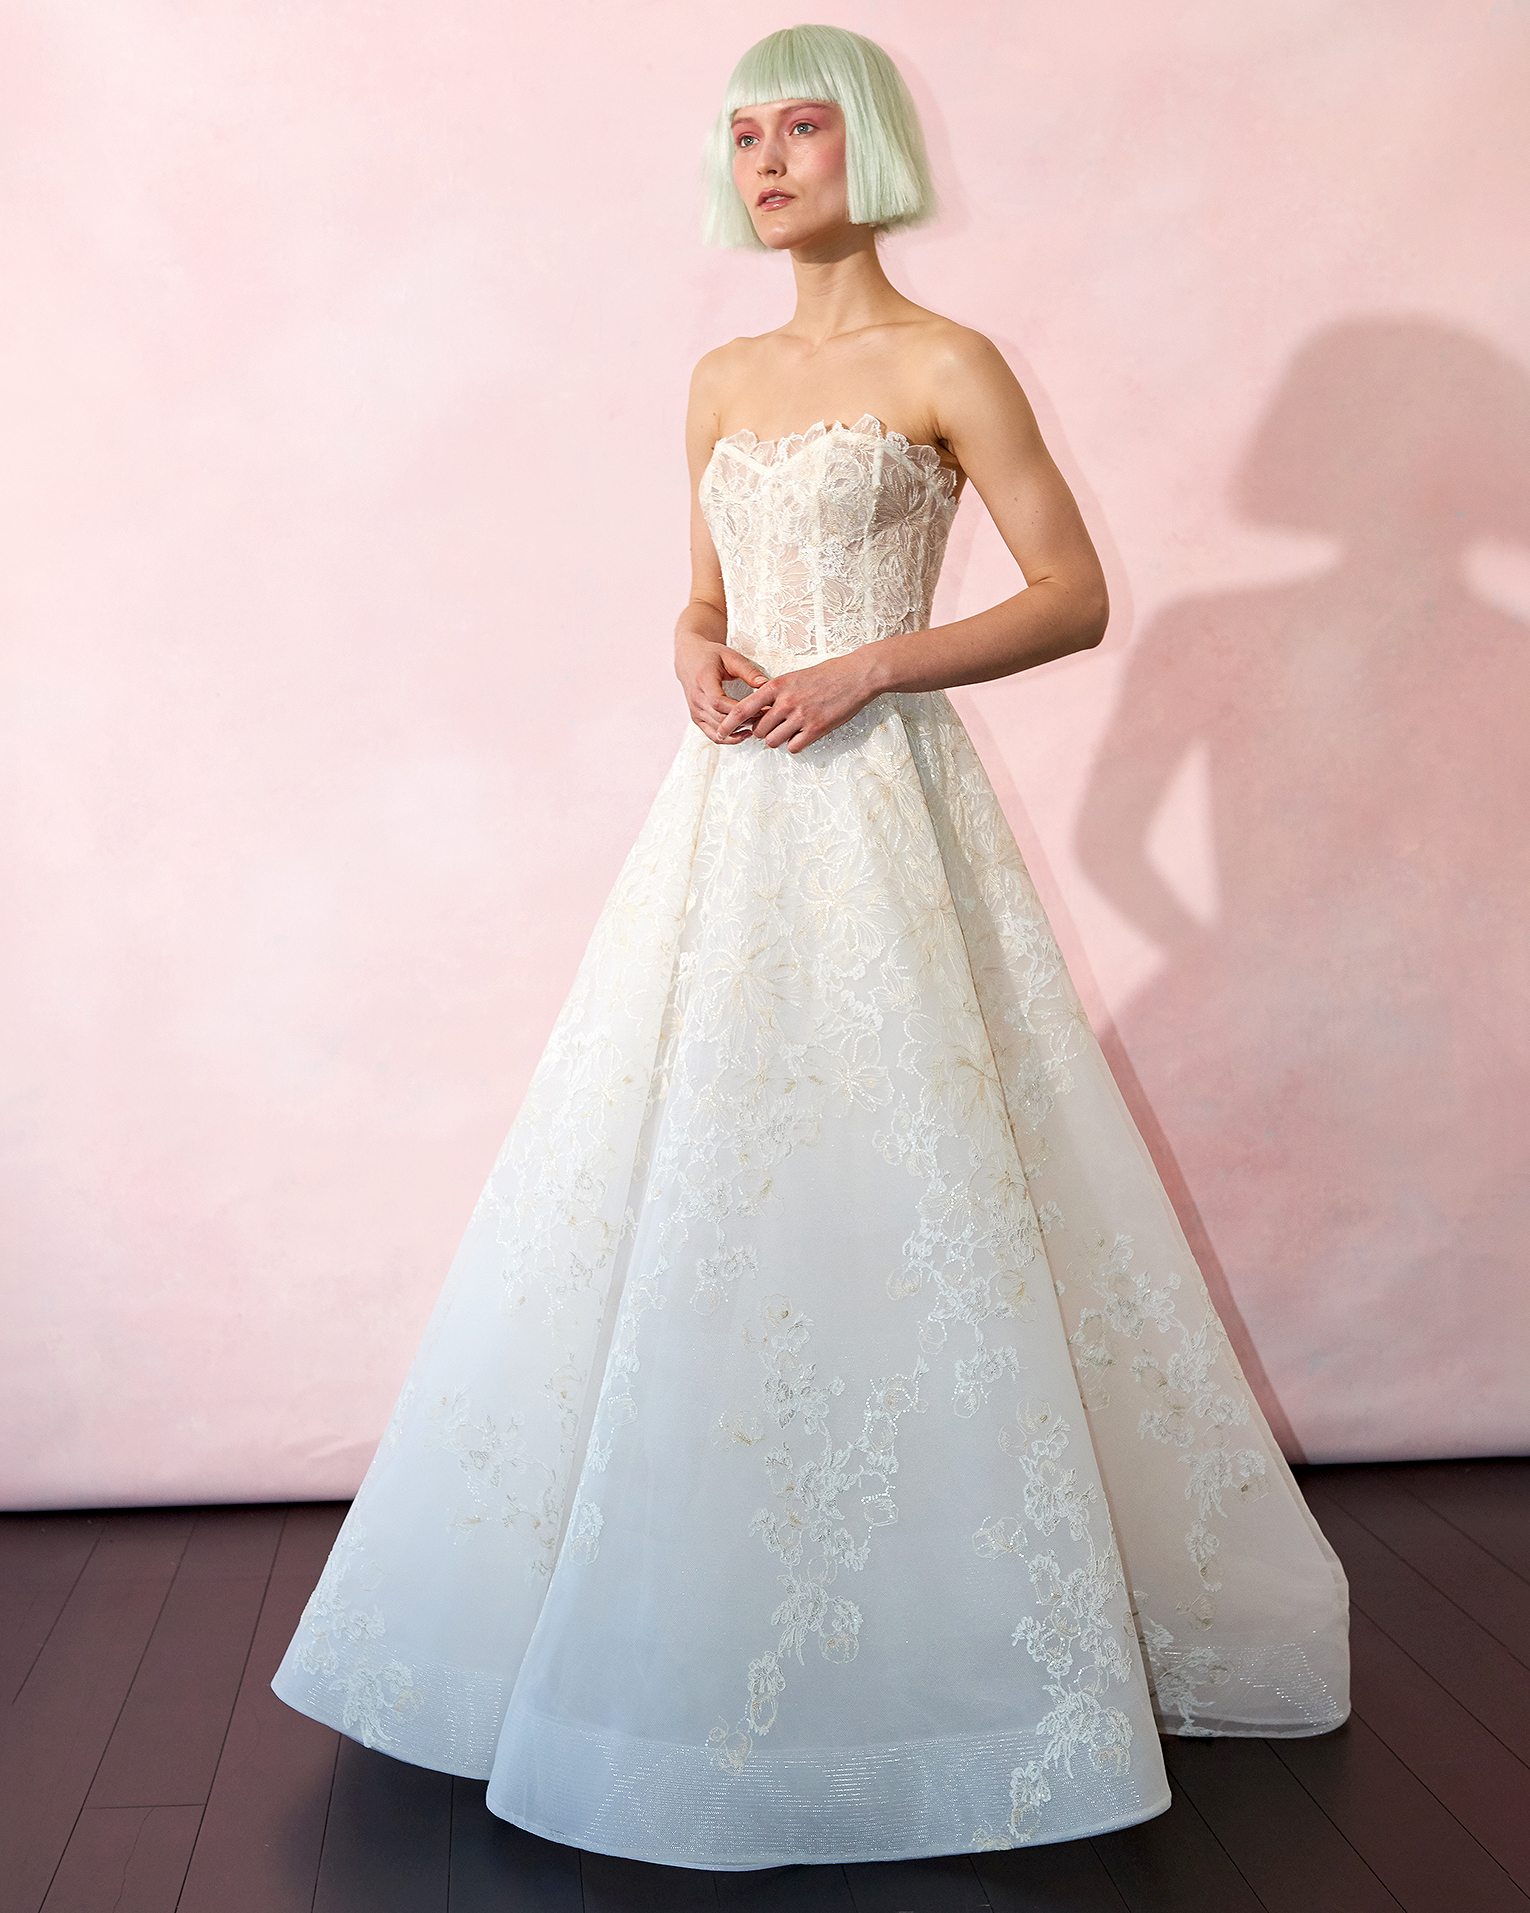 isabelle armstrong wedding dress spring 2019 corseted bodice lace ruffle neck